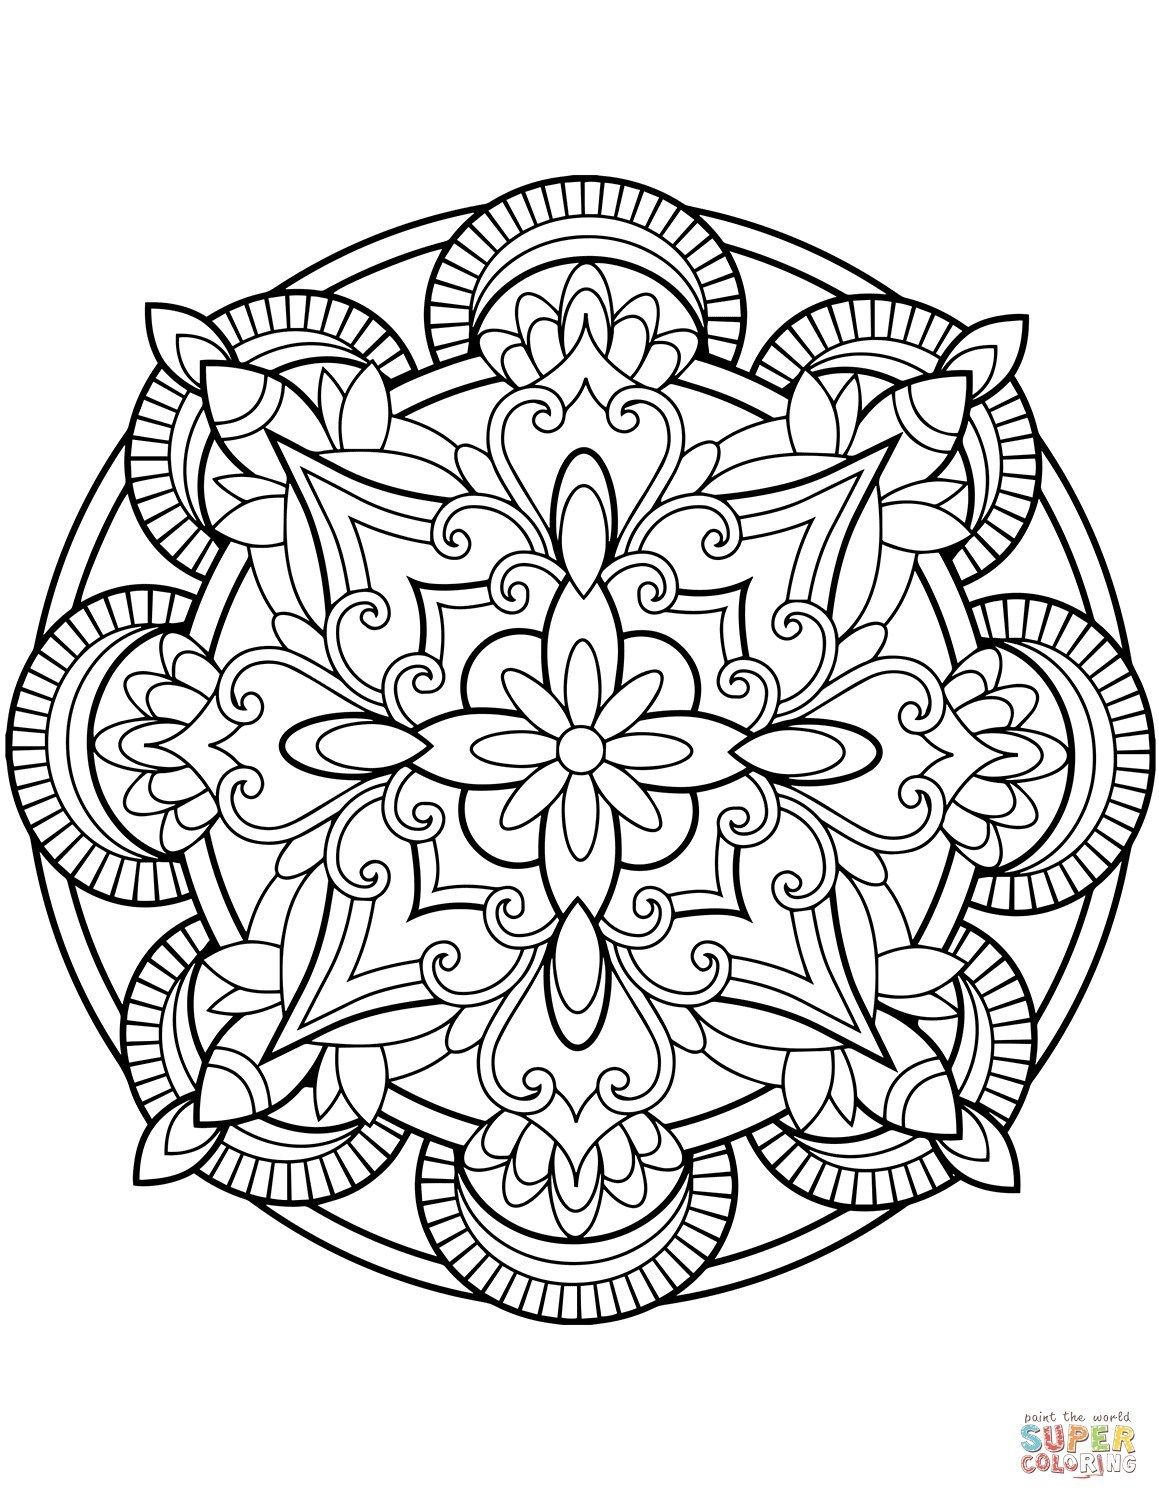 24+ Excellent Picture of Mandalas Coloring Pages is part of Mandala coloring pages, Mandala coloring, Printable coloring pages, Coloring pages, Coloring pages inspirational, Free printable coloring - Mandalas Coloring Pages Mandala Coloring Pages Hellokids  Mandalas Coloring Pages Animal Mandalas Coloring Pages Free Coloring Pages  Mandalas Coloring Pages Advanced Mandalas Coloring Pages Free Coloring Pages  Mandalas Coloring Pages Mandala Art Coloring Pages Beautiful Coloring Pages Animals Mandala  Mandalas Coloring Pages Mandala Harmony And Complexity Malas Adult Coloring Pages  Mandalas Coloring Pages Complex Mandala